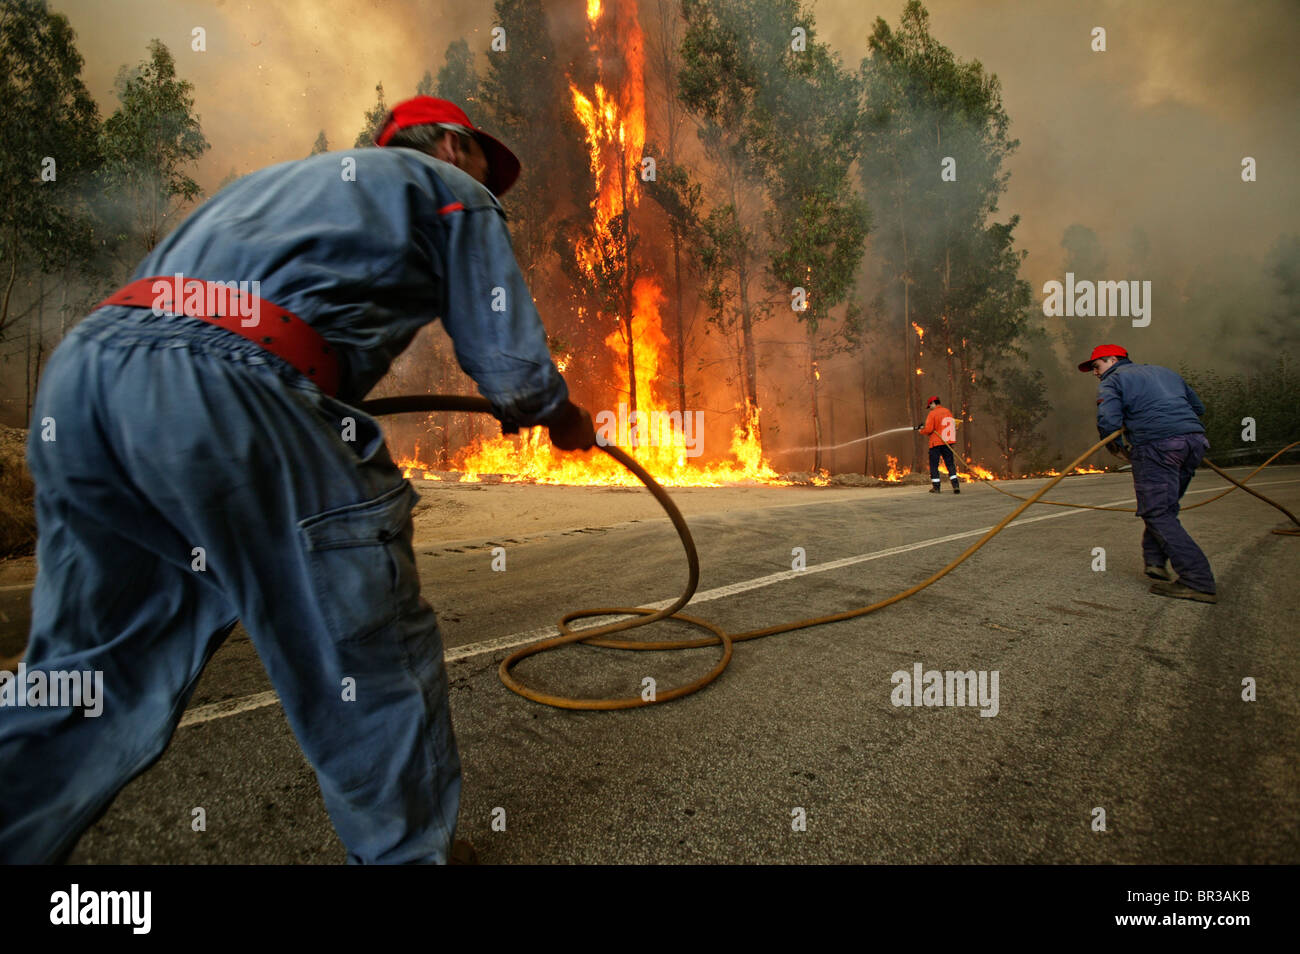 Three firemen try to extinguish a massive wildfire - Stock Image